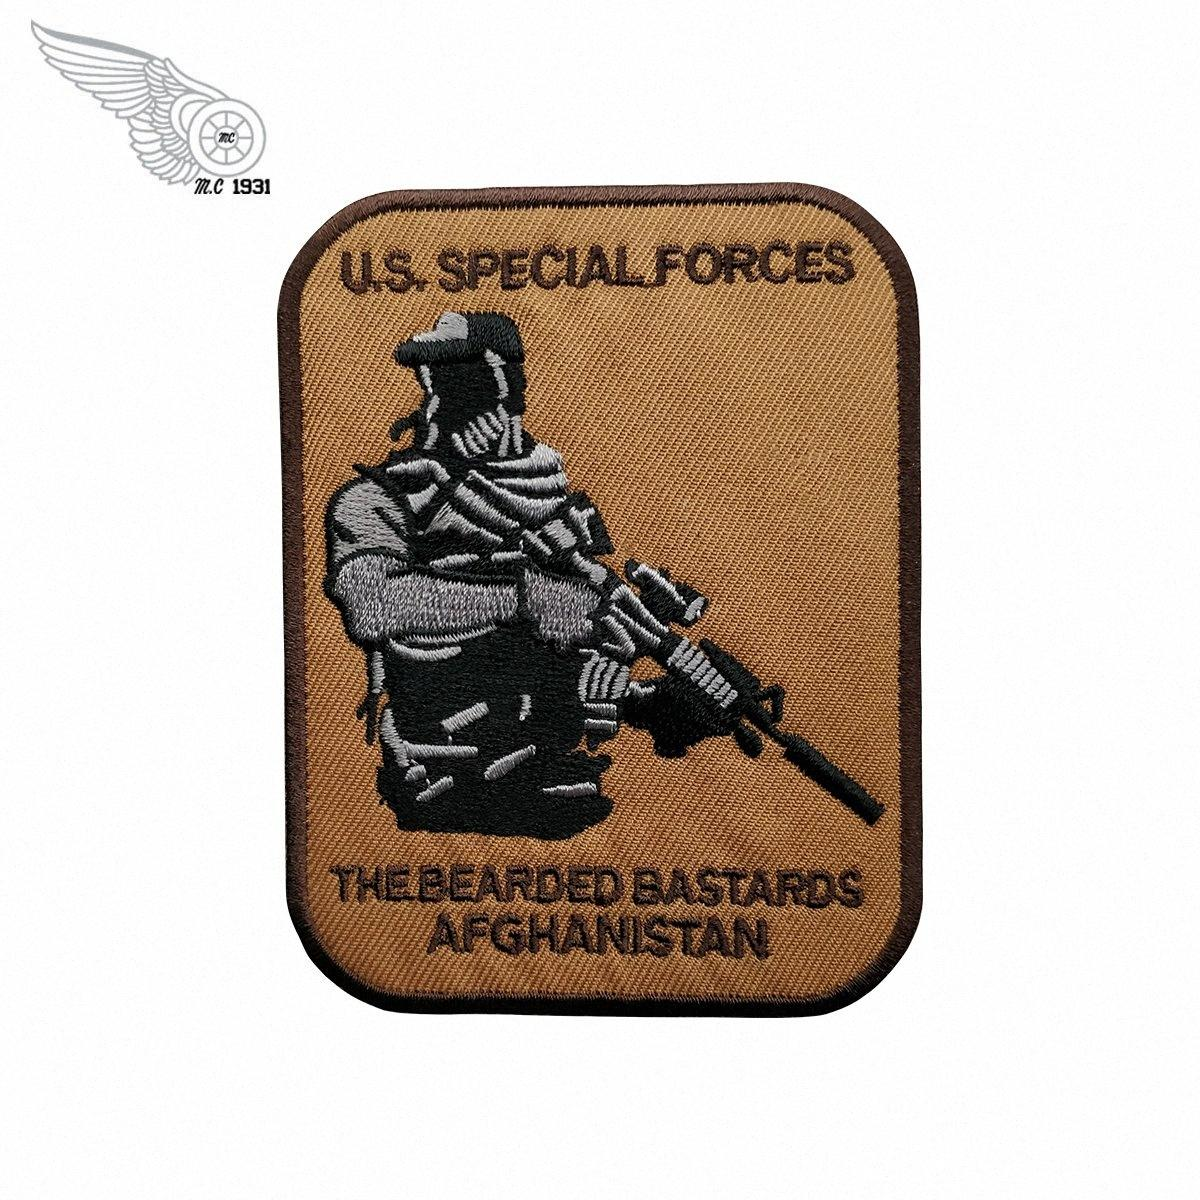 U.S.Special Forces Military Embroidery Iron On Patches Handsome Soldier Badge For Clothing Free Shipping ZsjG#